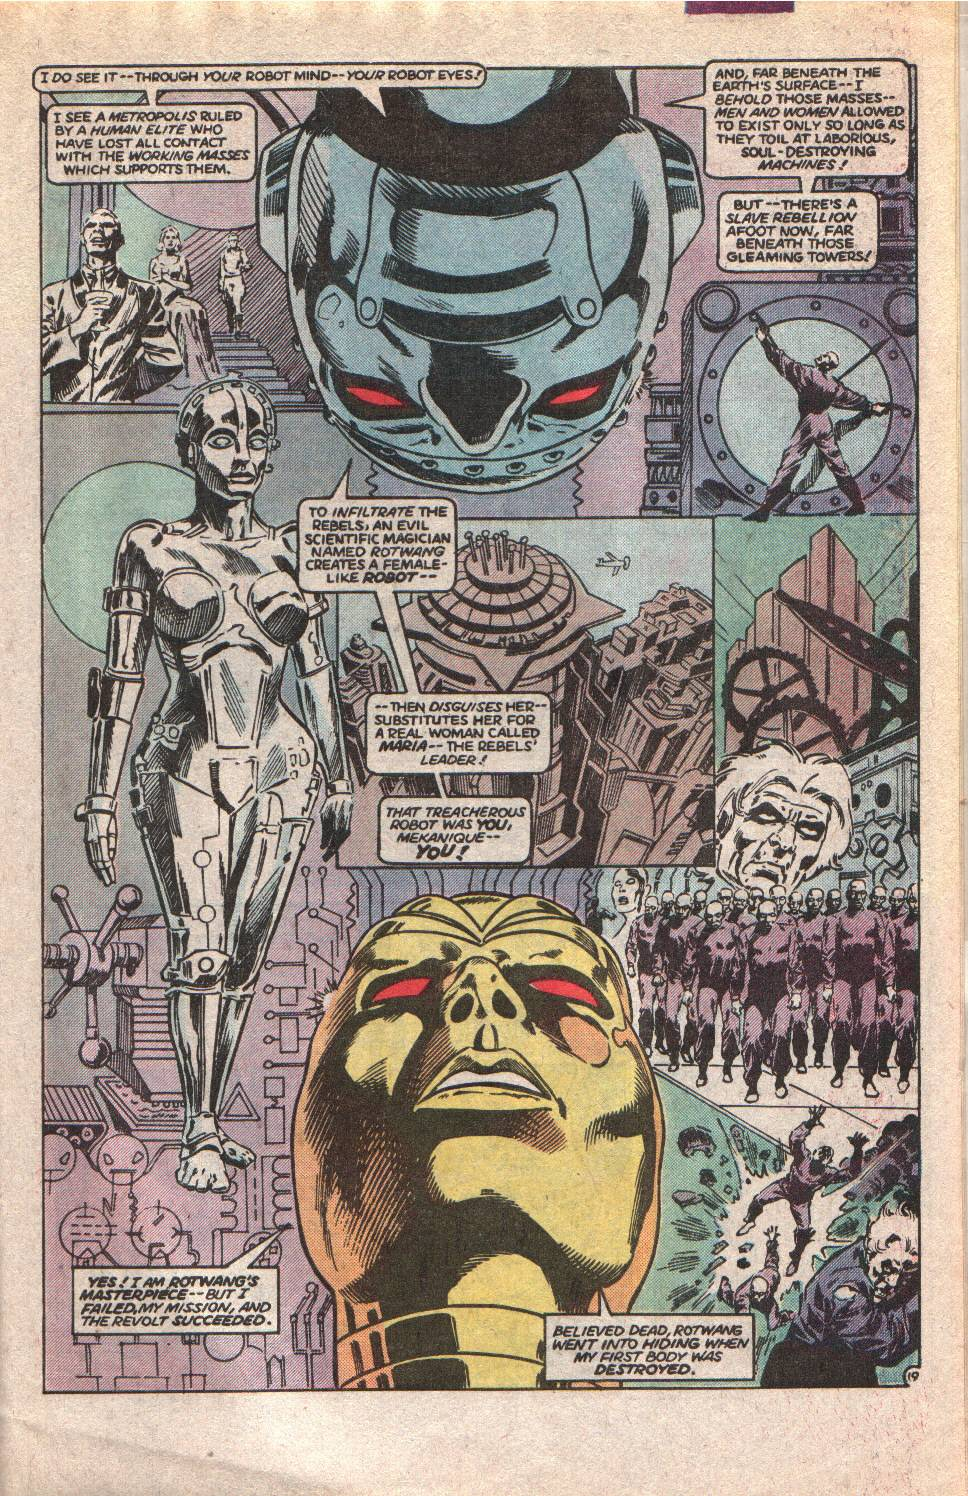 Read online All-Star Squadron comic -  Issue #60 - 27